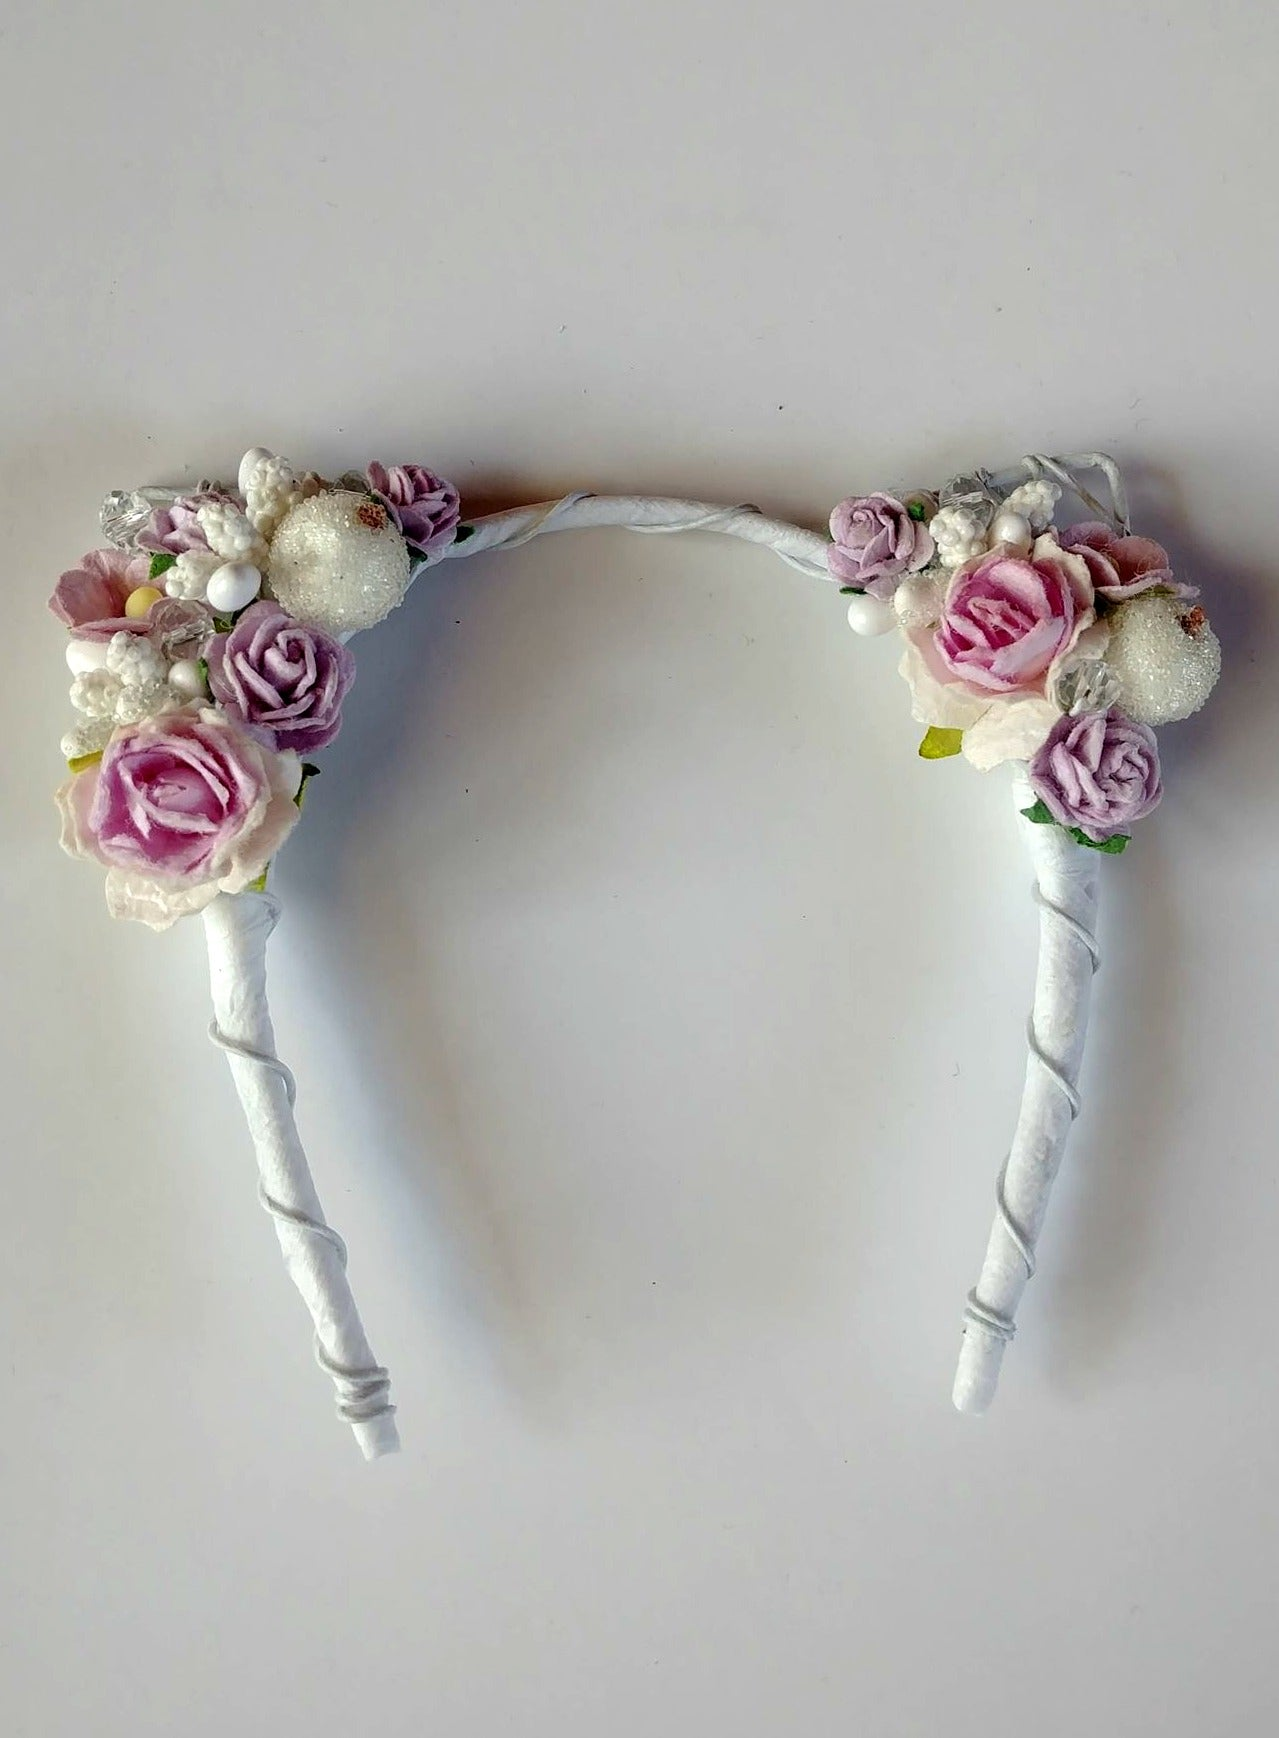 Zazou Dolls Exclusive Cat Ears headband for 18 Inch dolls such as Journey, OG and American Girl